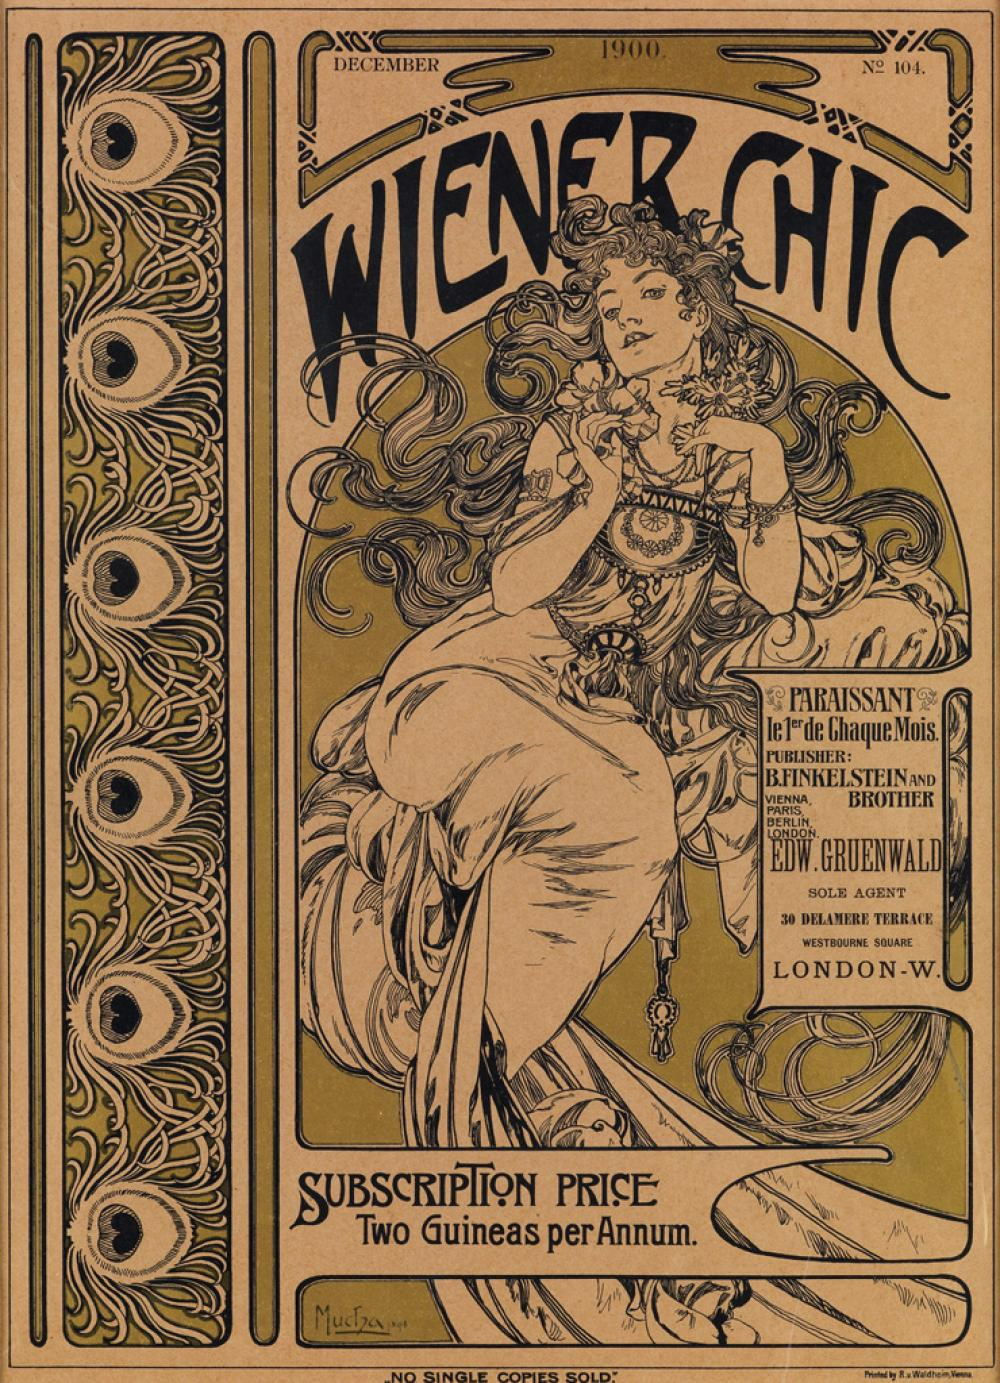 ALPHONSE MUCHA (1860-1939). WIENER CHIC. Magazine cover. No. 104, December 1900. 15x11 inches, 38x28 cm. R.V. Walkheim, Vienna.